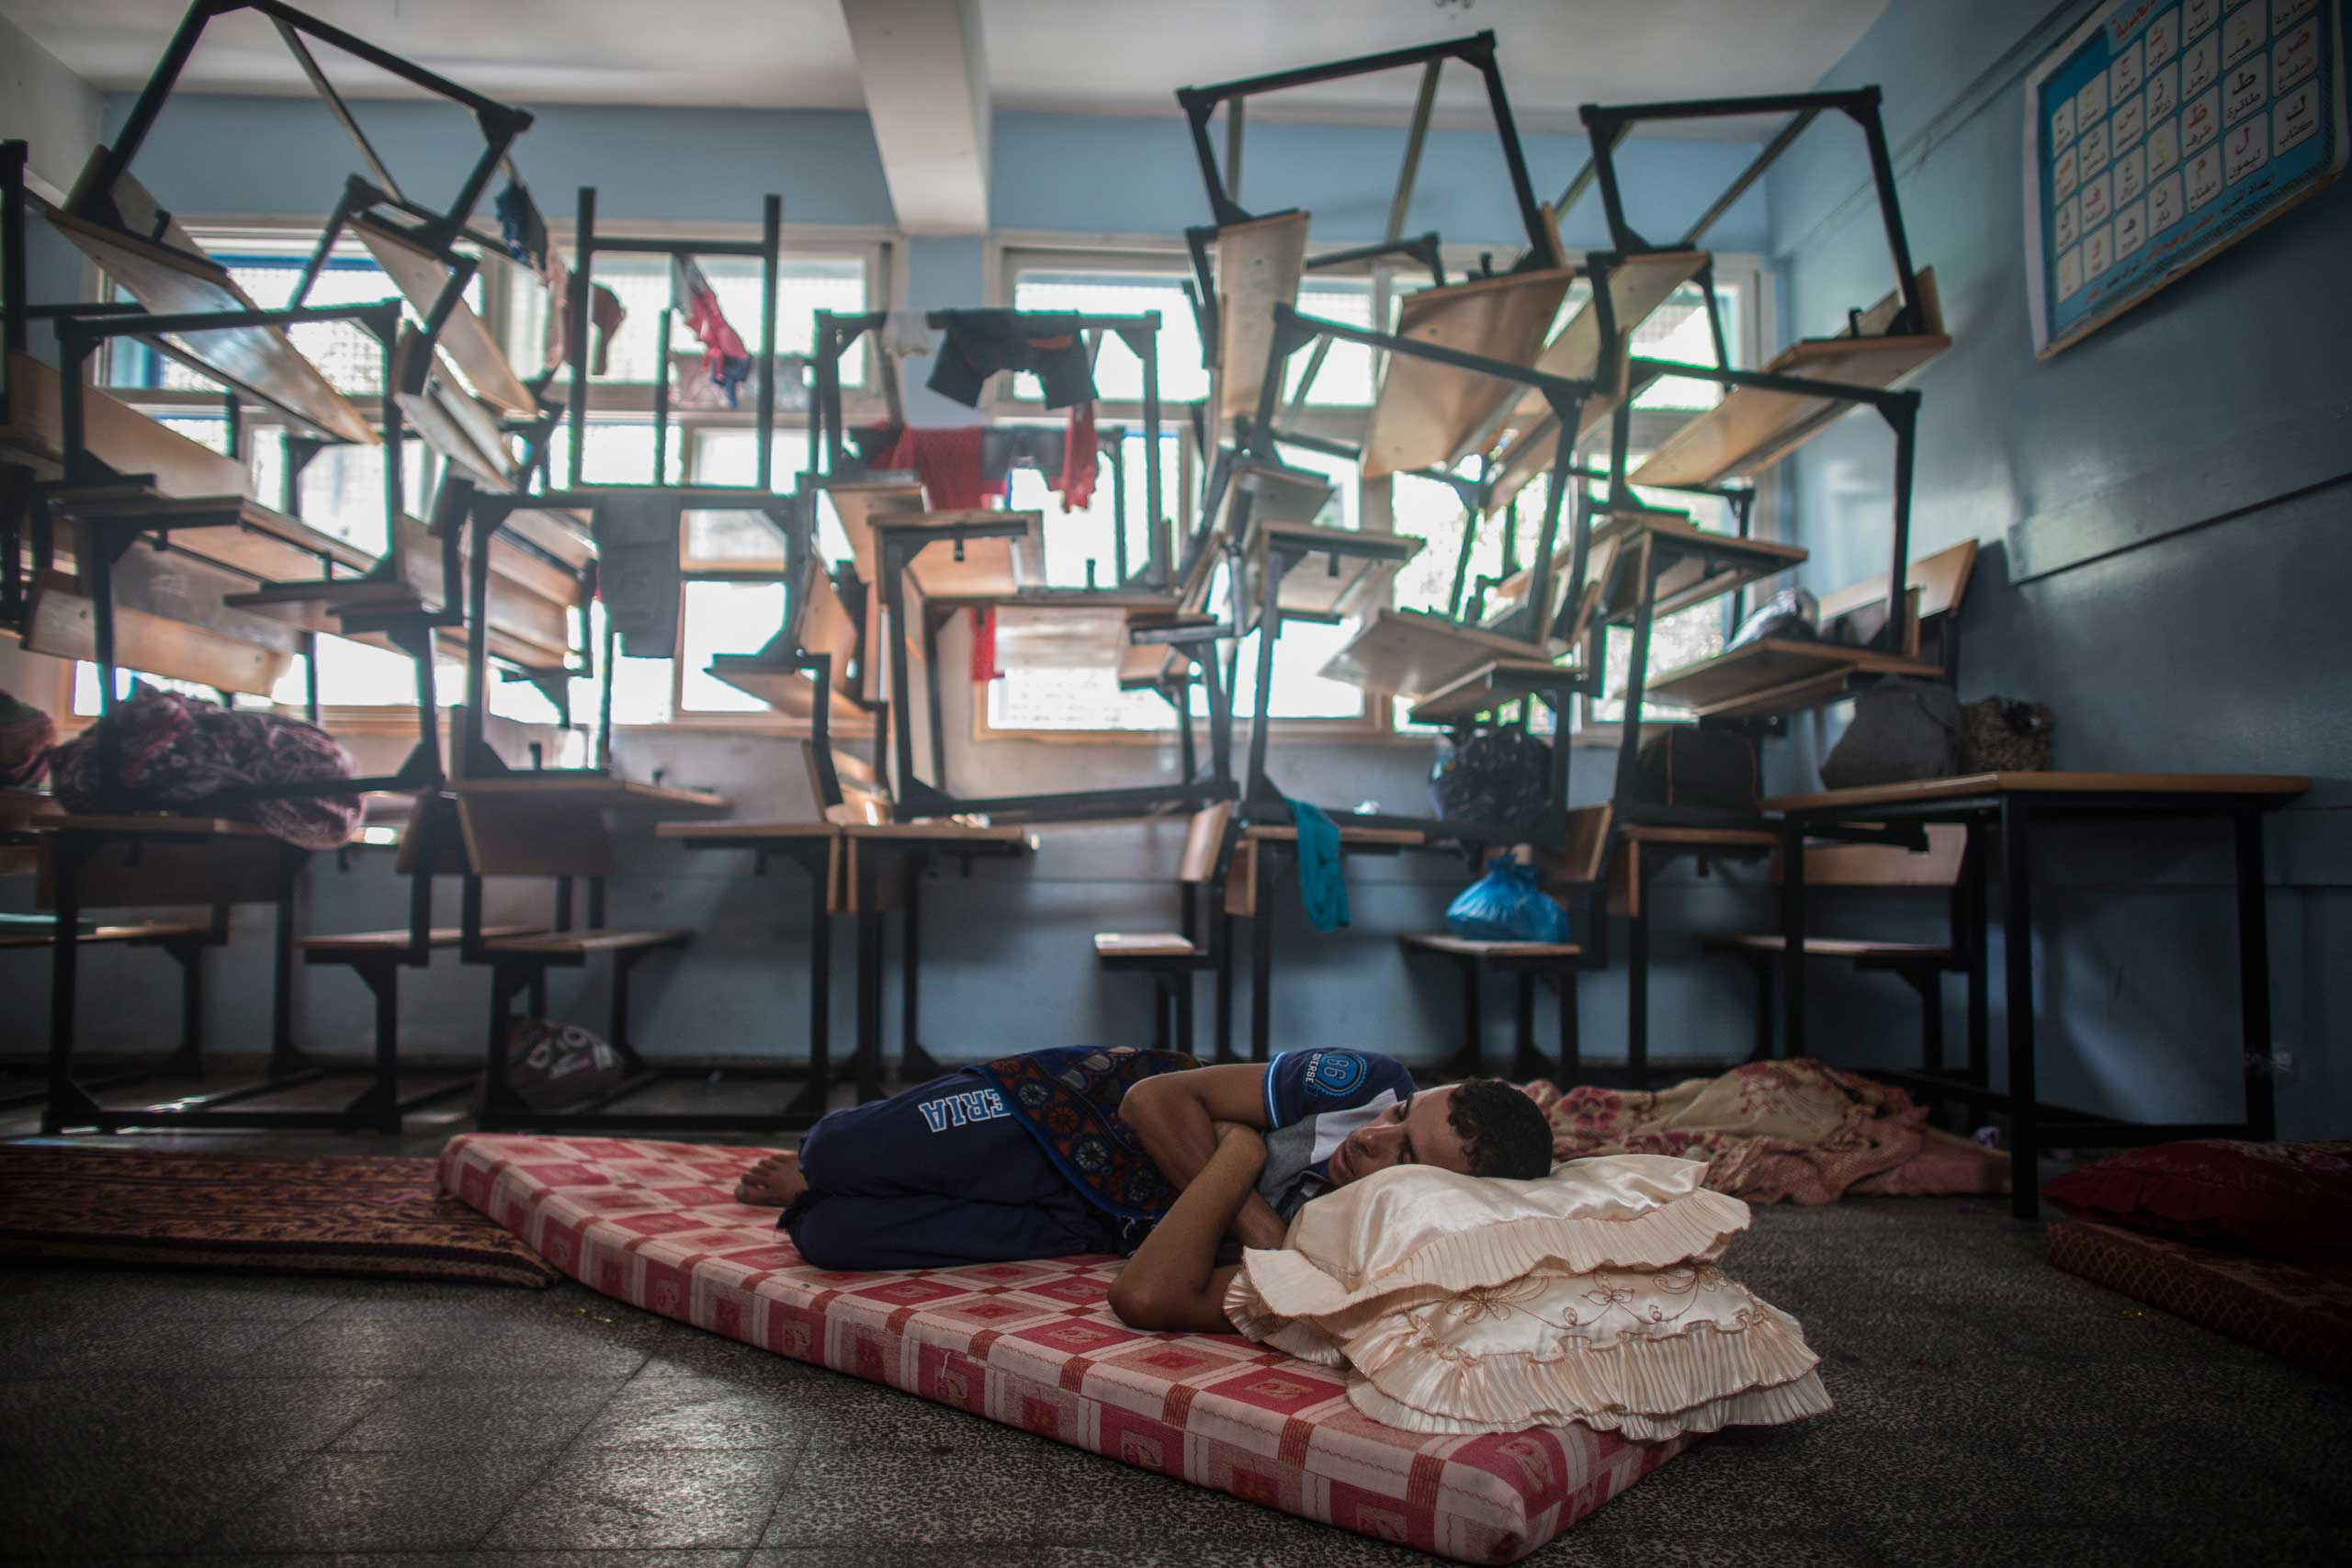 A man who fled from Beit Lahiya, in the northern Gaza Strip, sleeps in a U.N. school that was transformed into a shelter for displaced persons, Gaza City, July 13, 2014.